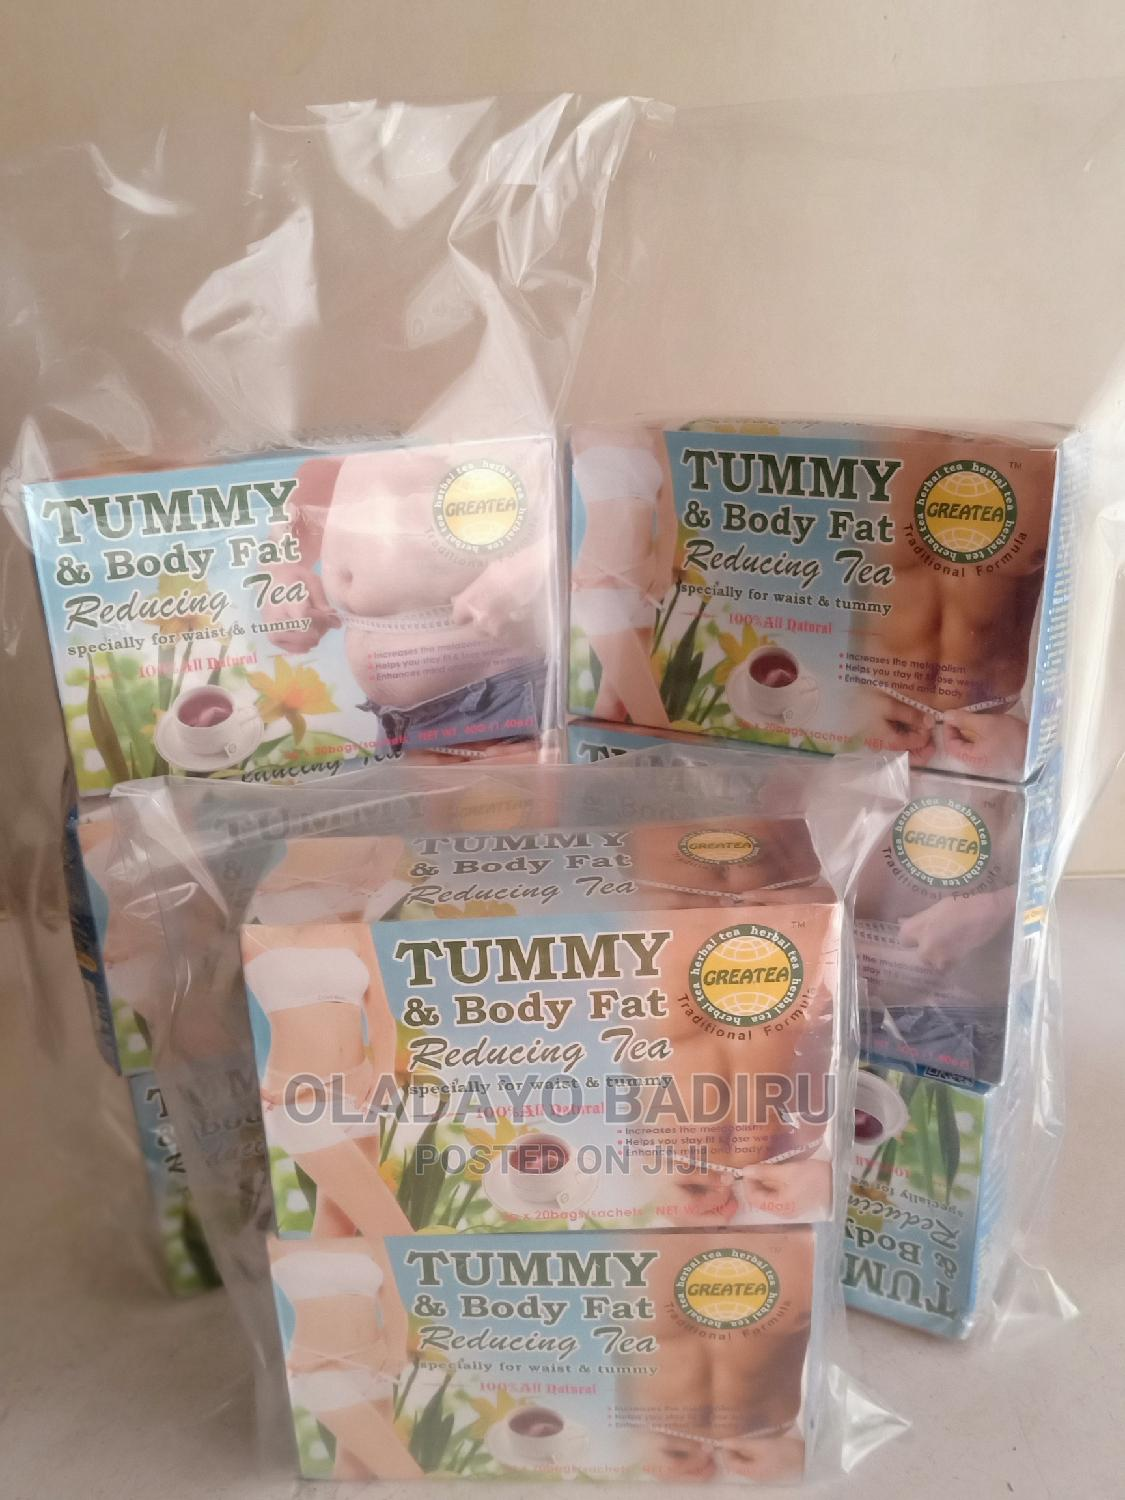 Tummy and Body Fat Reducing Tea